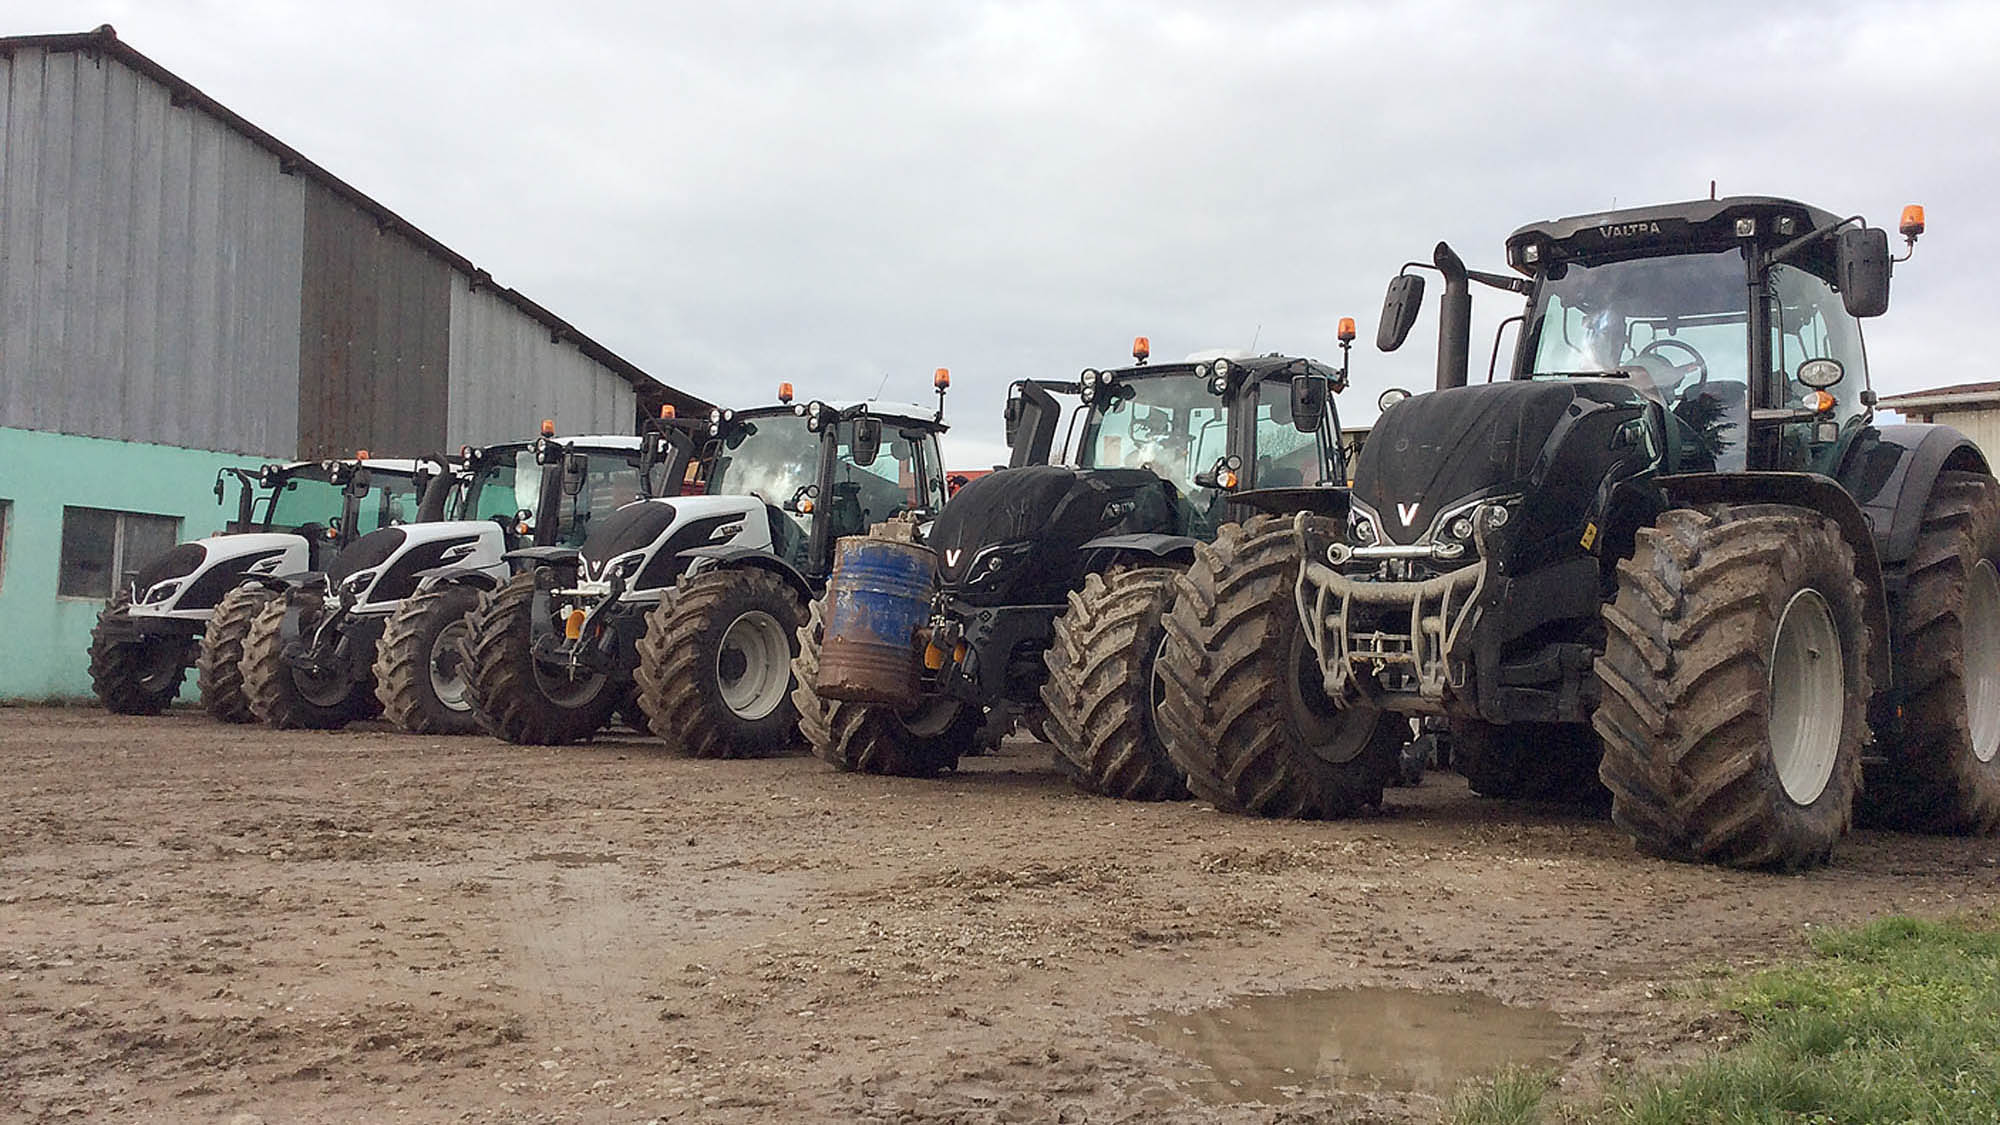 The Streicher family's new fleet of tractors